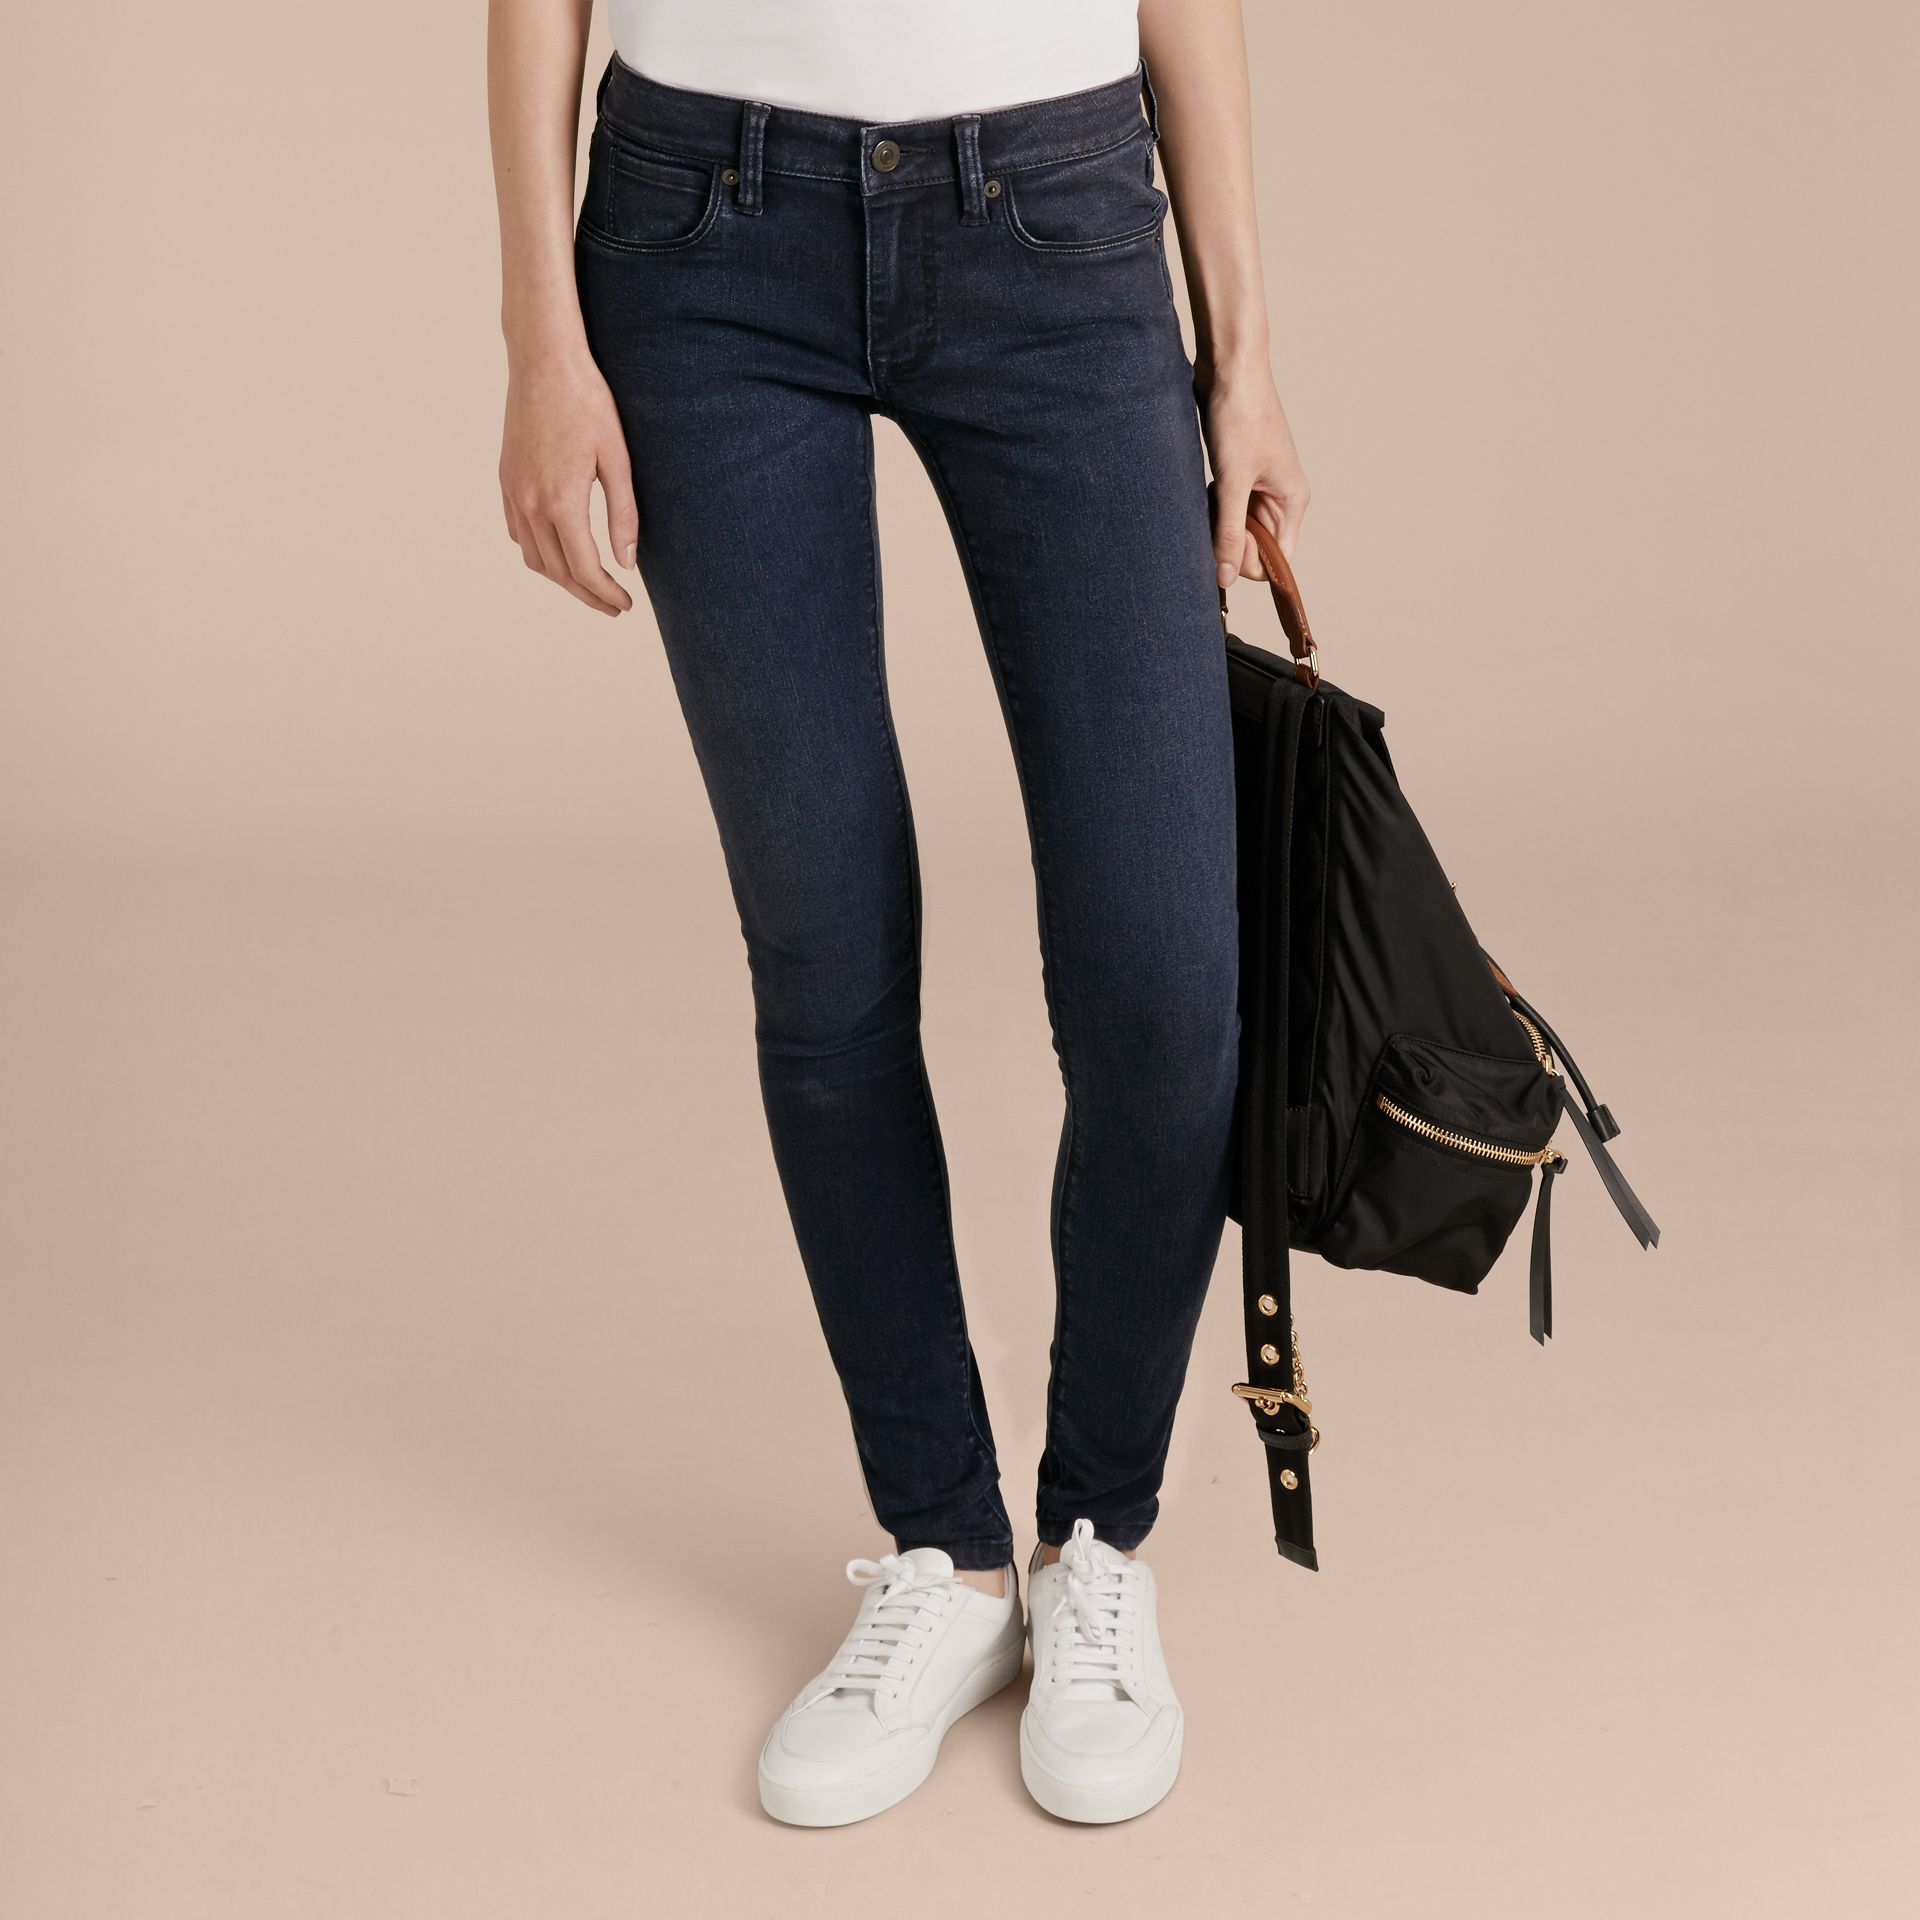 Skinny Fit Power-Stretch Jeans in Dark Indigo - Women | Burberry - gallery image 7